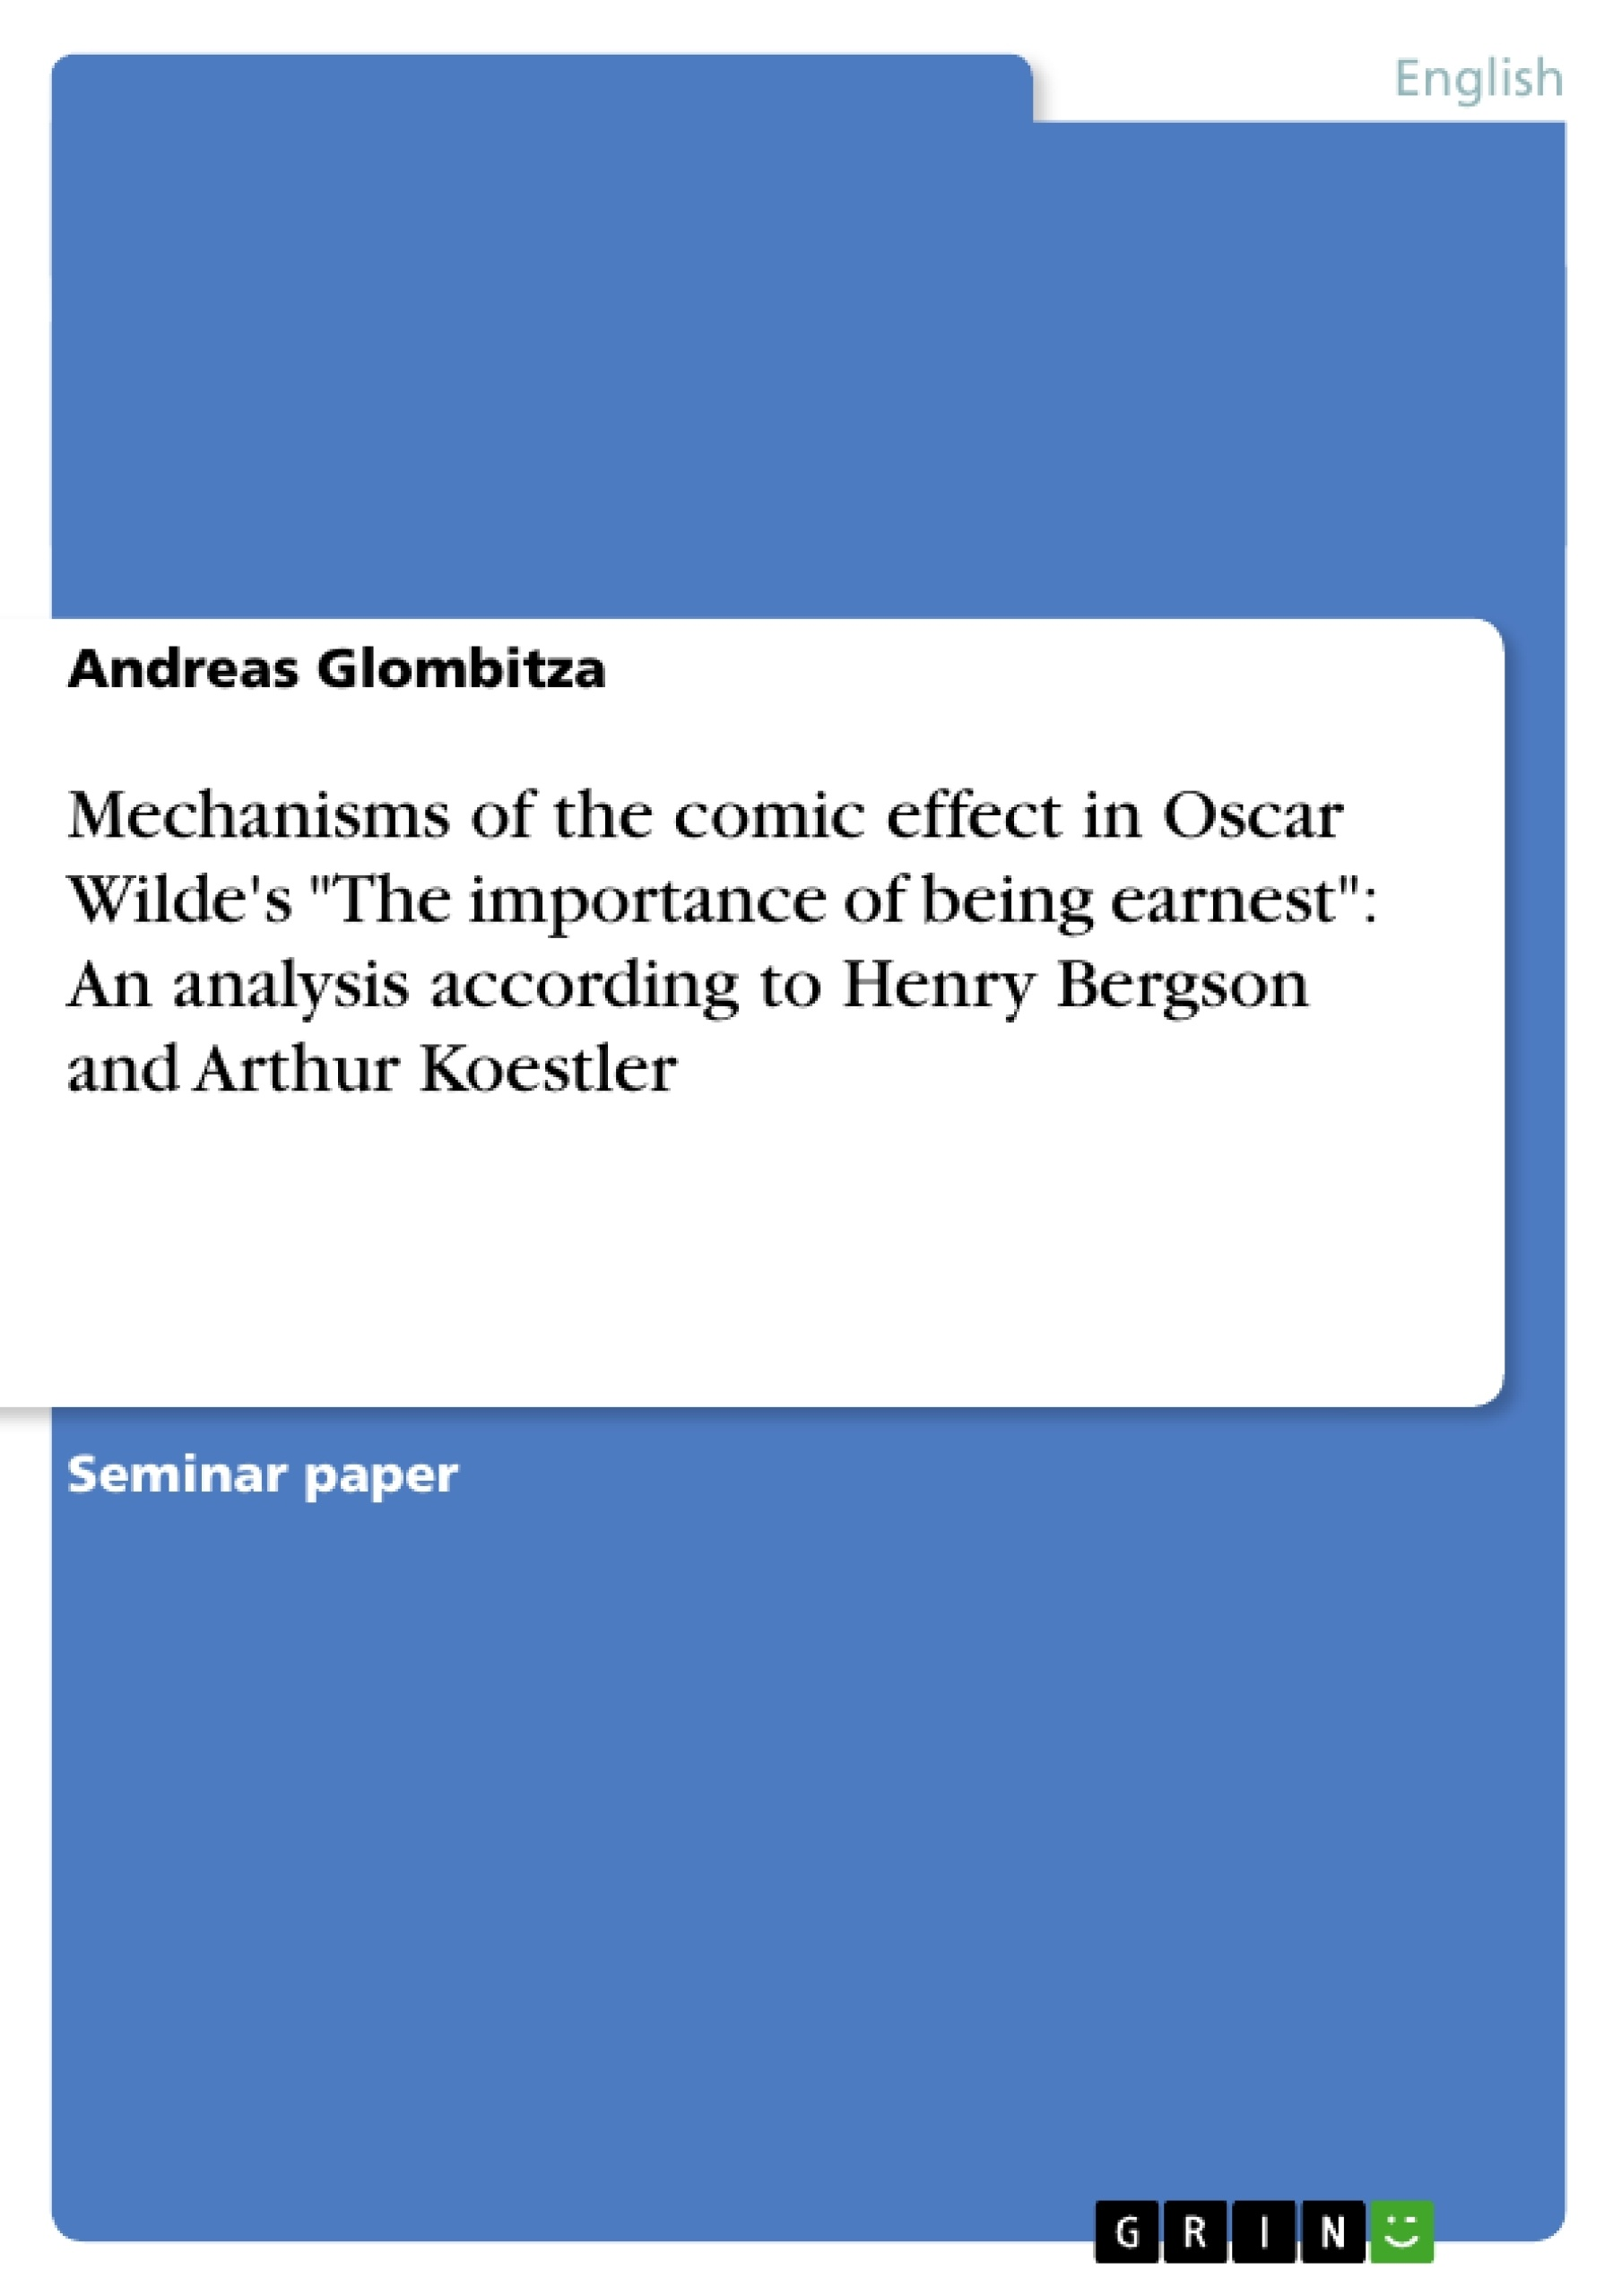 """Title: Mechanisms of the comic effect in Oscar Wilde's """"The importance of being earnest"""": An analysis according to Henry Bergson and Arthur Koestler"""